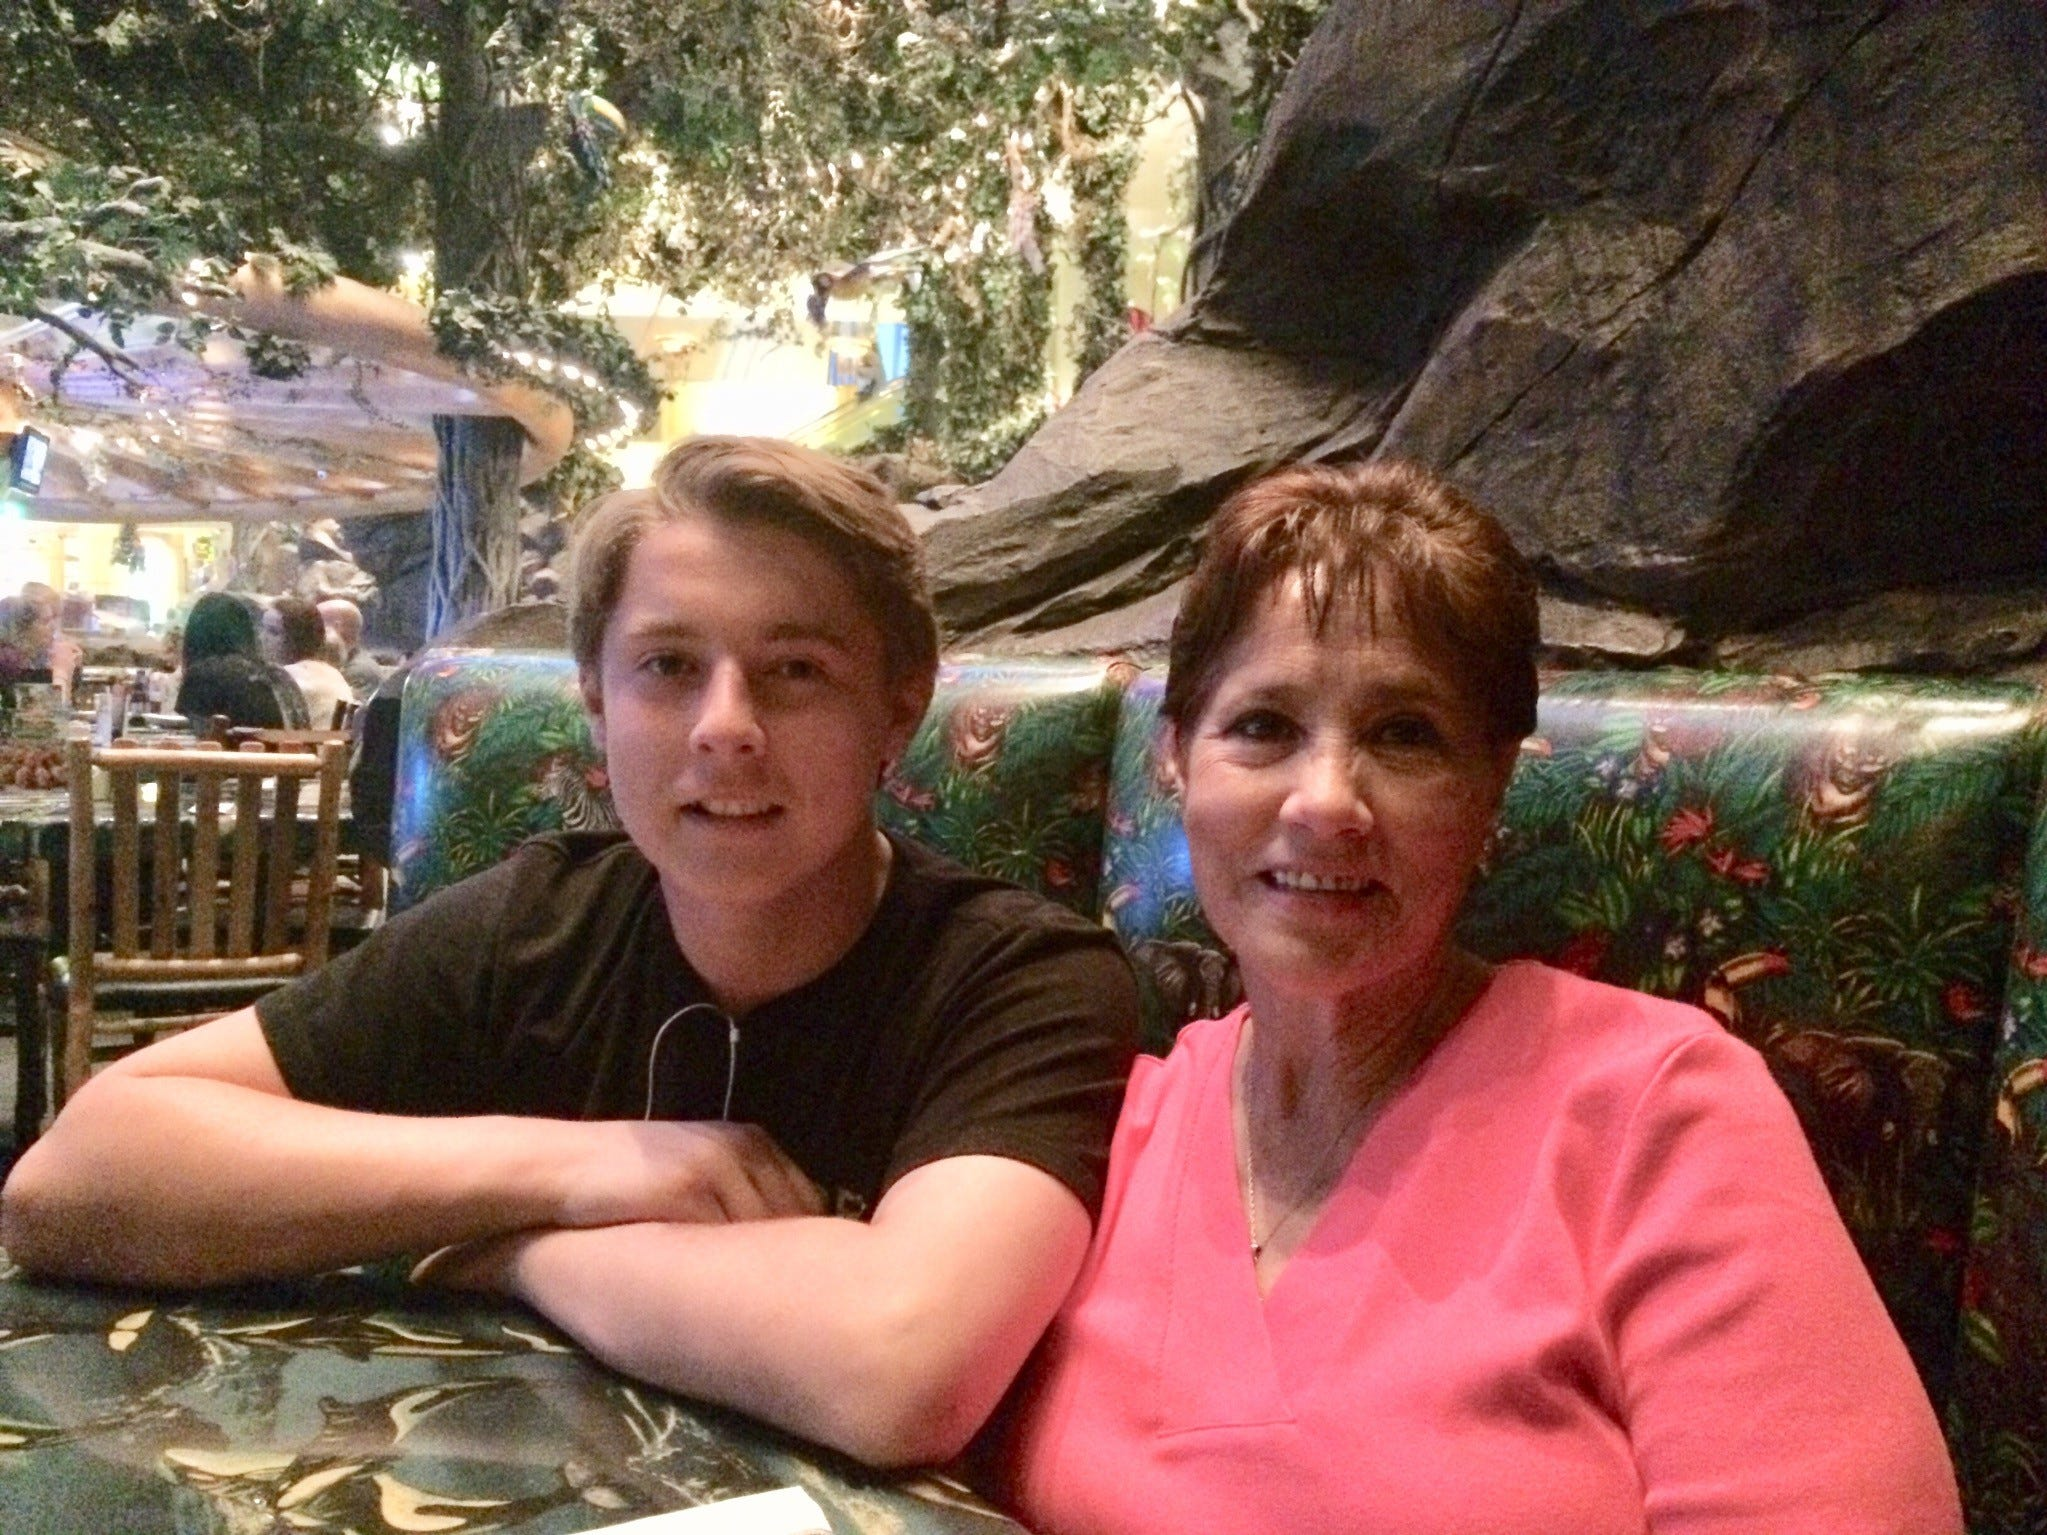 Jacob Montgomery, left, was one of three teens found dead with gunshot wounds in a car Sunday evening in Palm Springs. He's show in an undated photo with his grandmother, Edie Carranza.